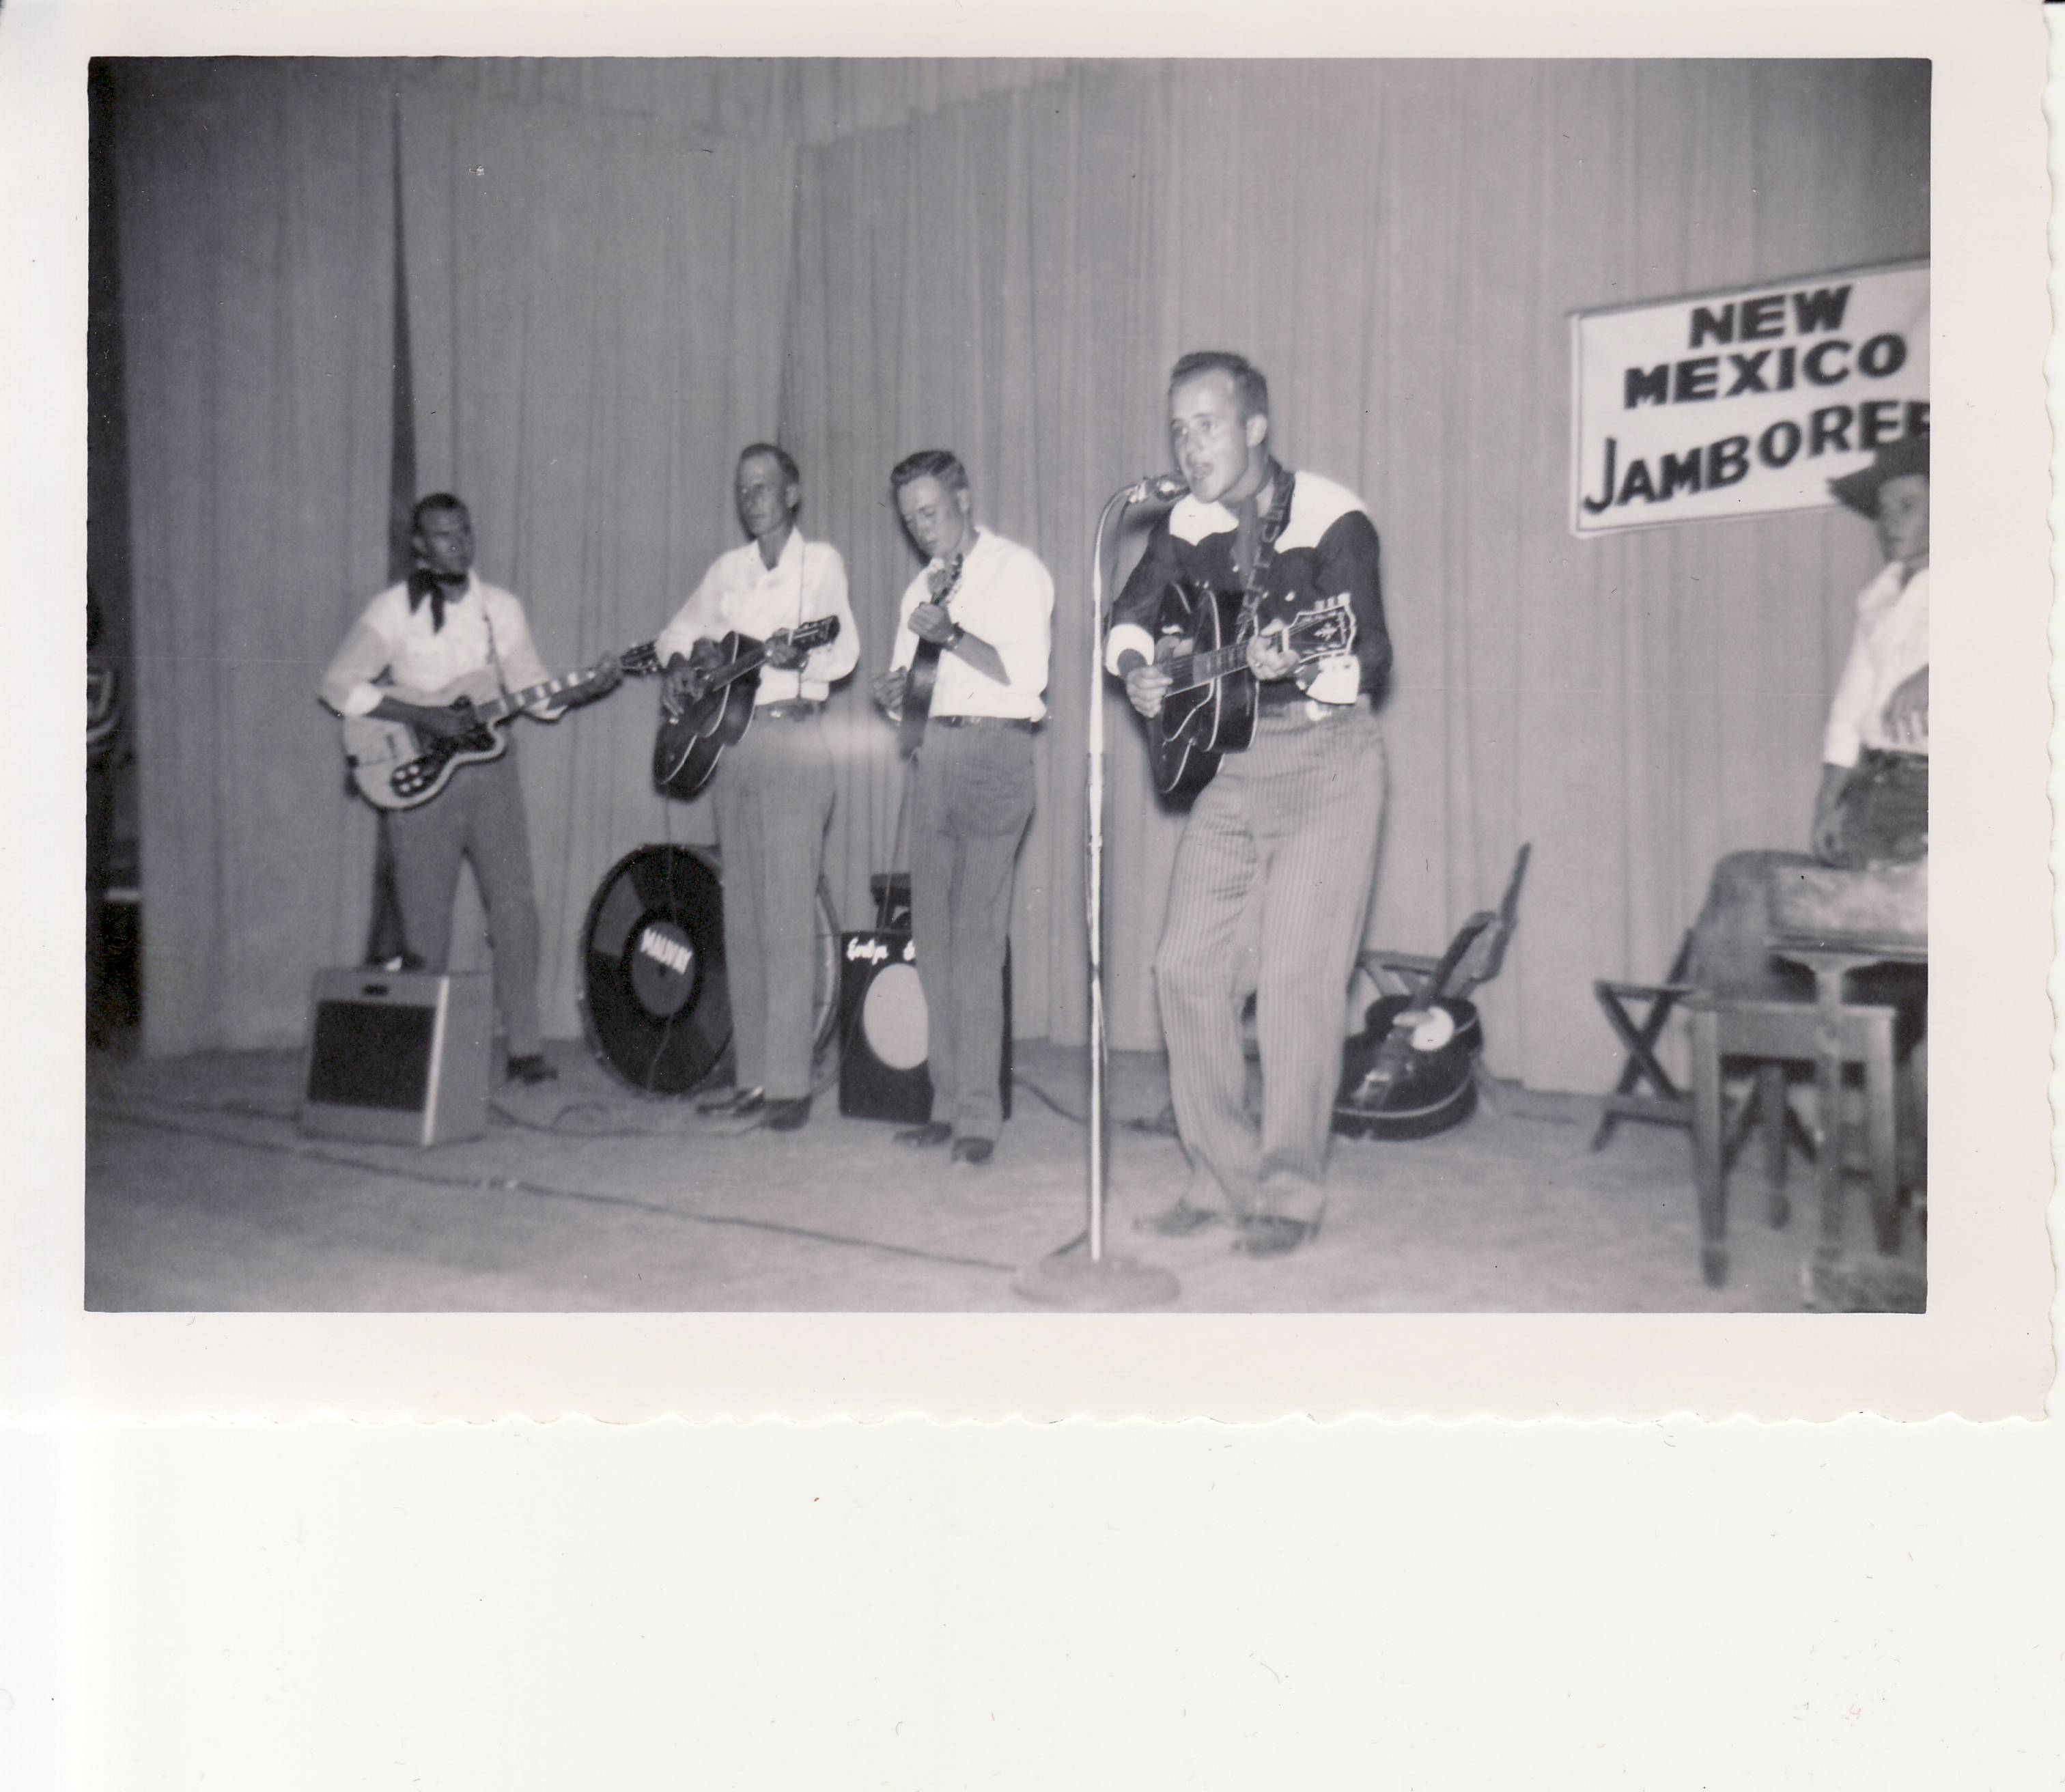 George Sullivan performing at a New Mexico county fair, circa 1952